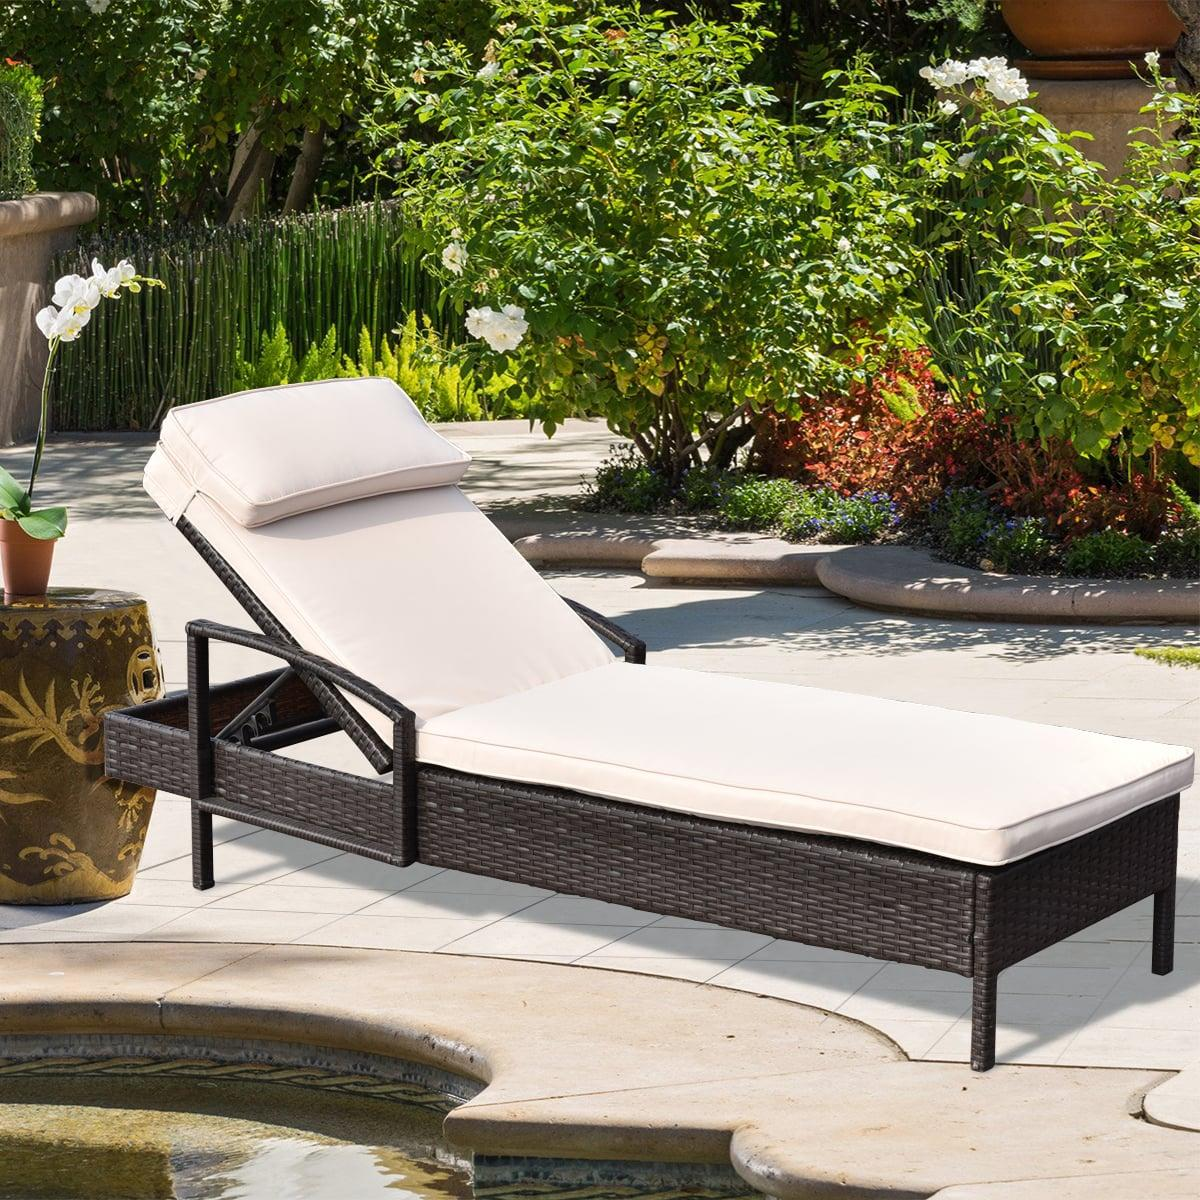 Walmart Has the Best Patio Furniture You Can Buy For ...